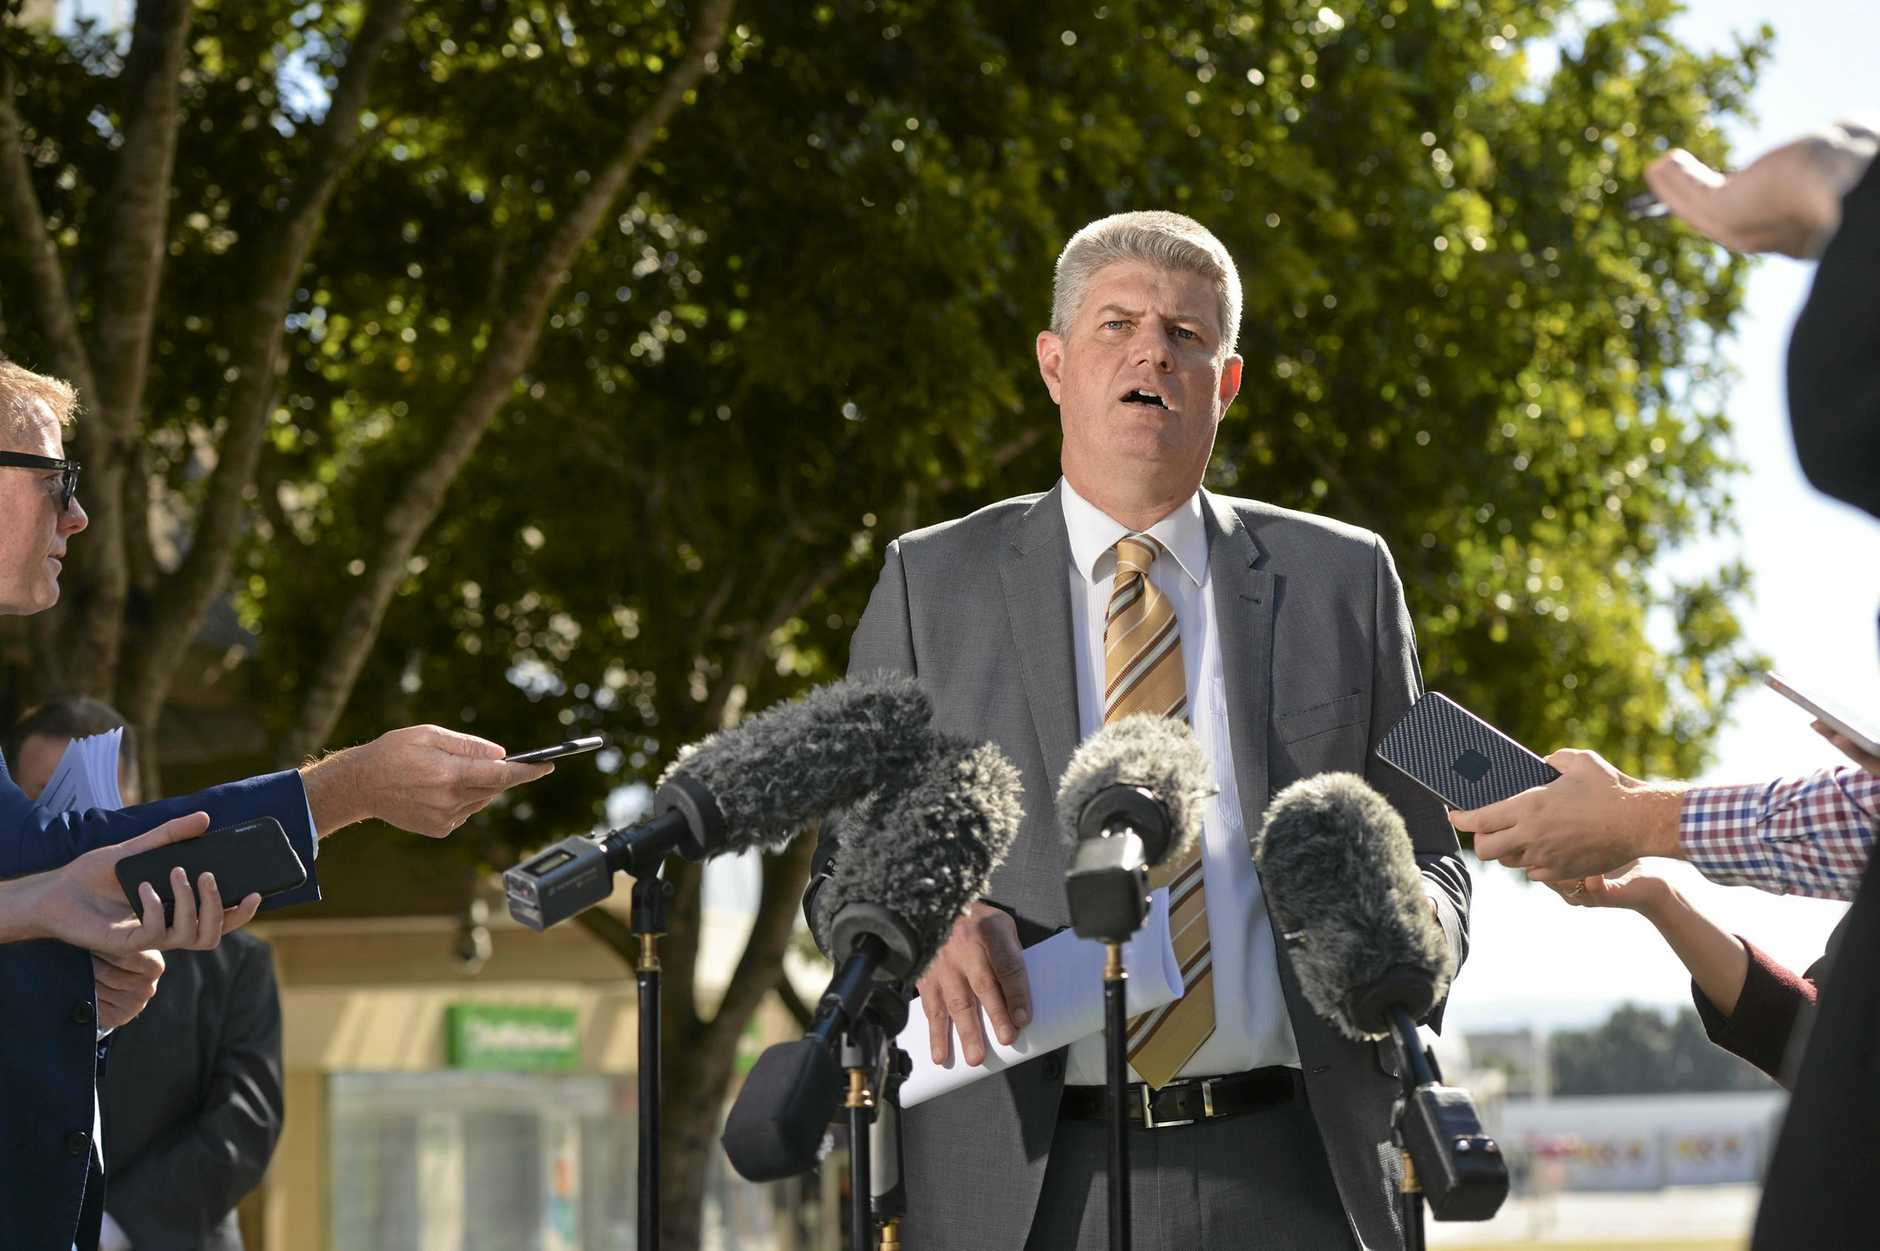 Stirling Hinchliffe holds a press conference in the Ipswich CBD mall with regards to the Ipswich City Council.